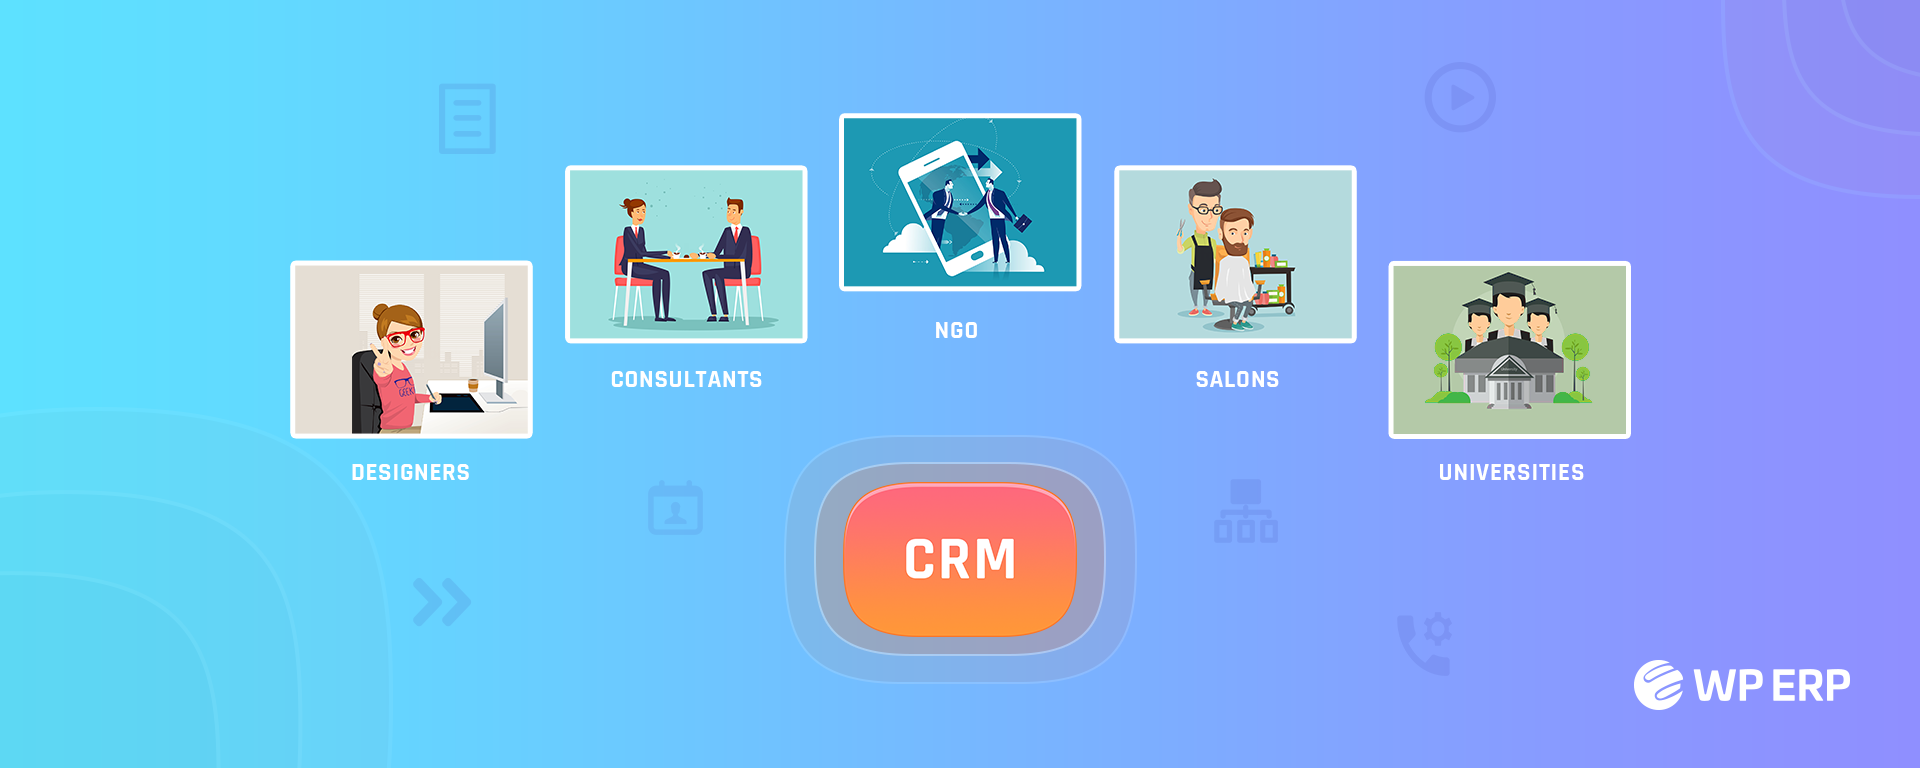 companies using CRM successfully